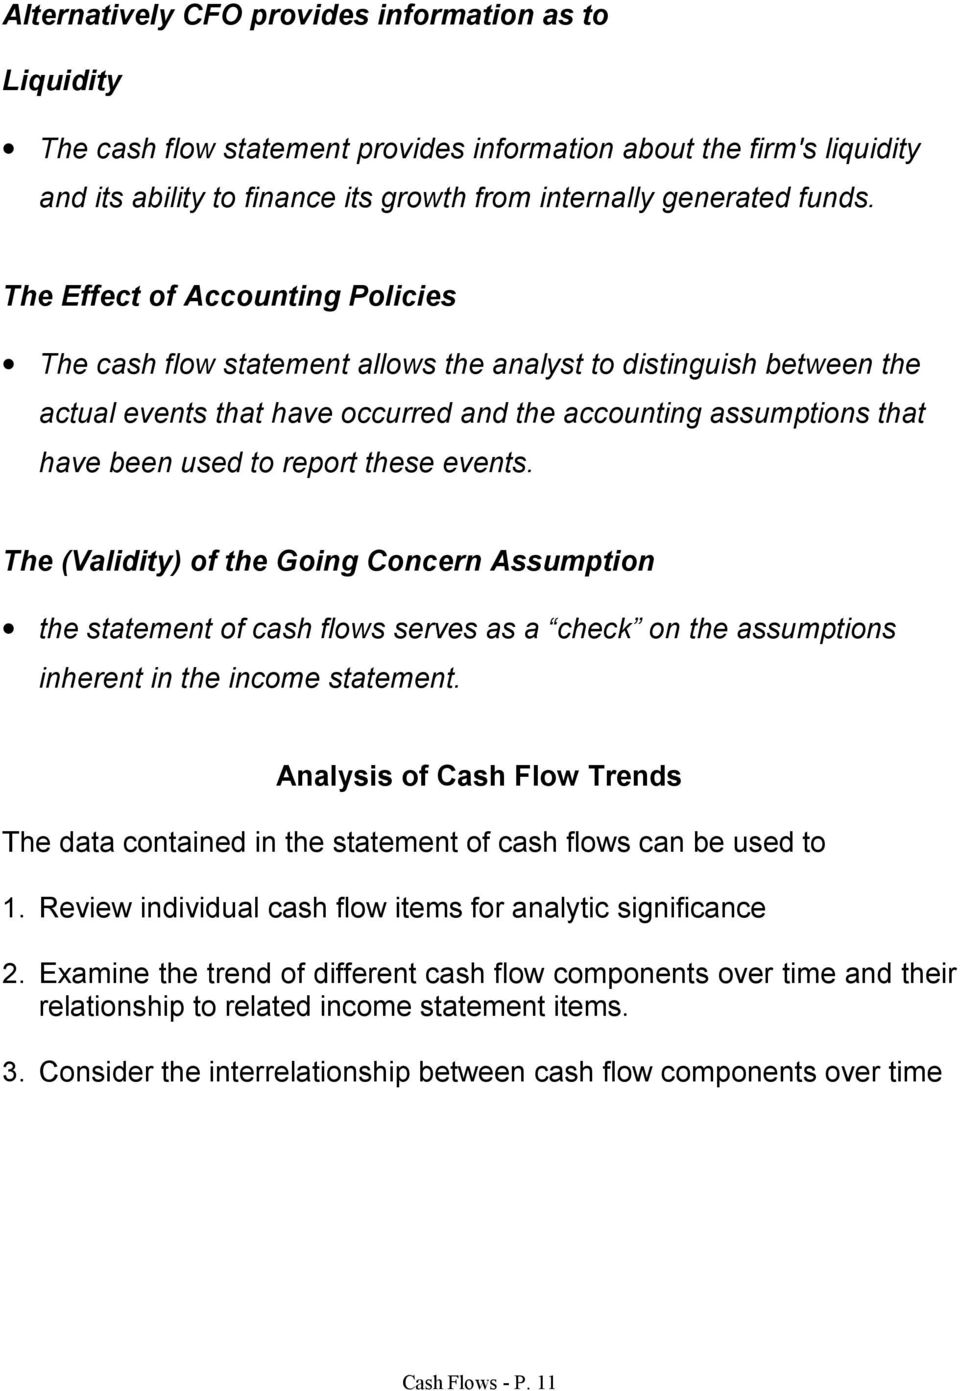 these events. The (Validity) of the Going Concern Assumption the statement of cash flows serves as a check on the assumptions inherent in the income statement.